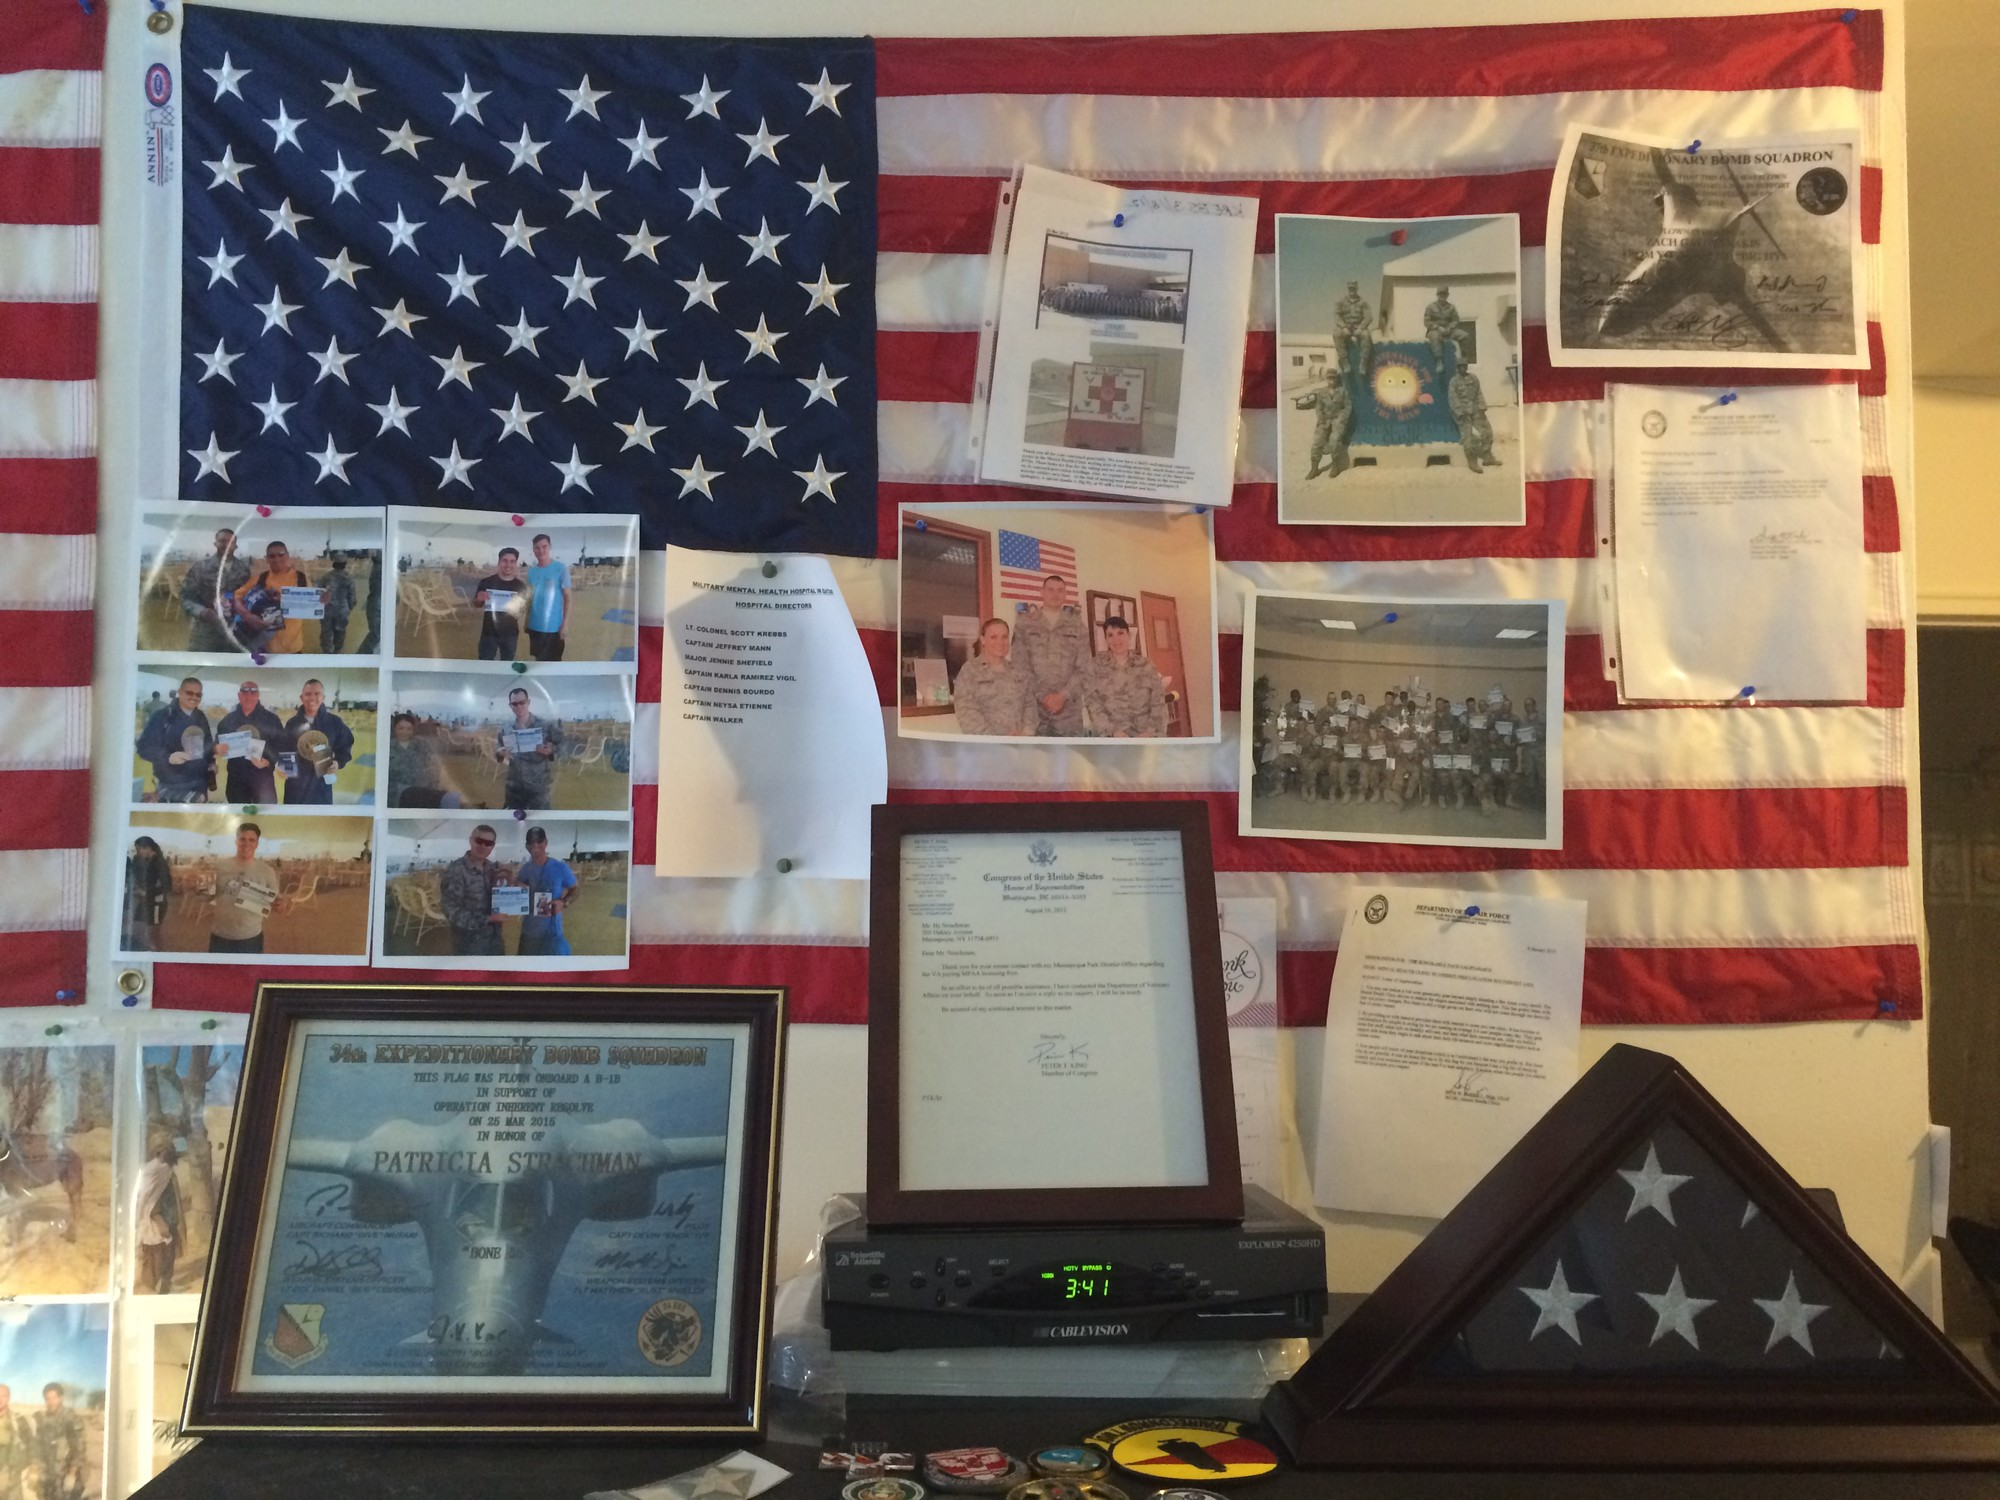 Strachman's Massapequa apartment features numerous photographs and other mementos from his time serving in the army. He is a World War II veteran.